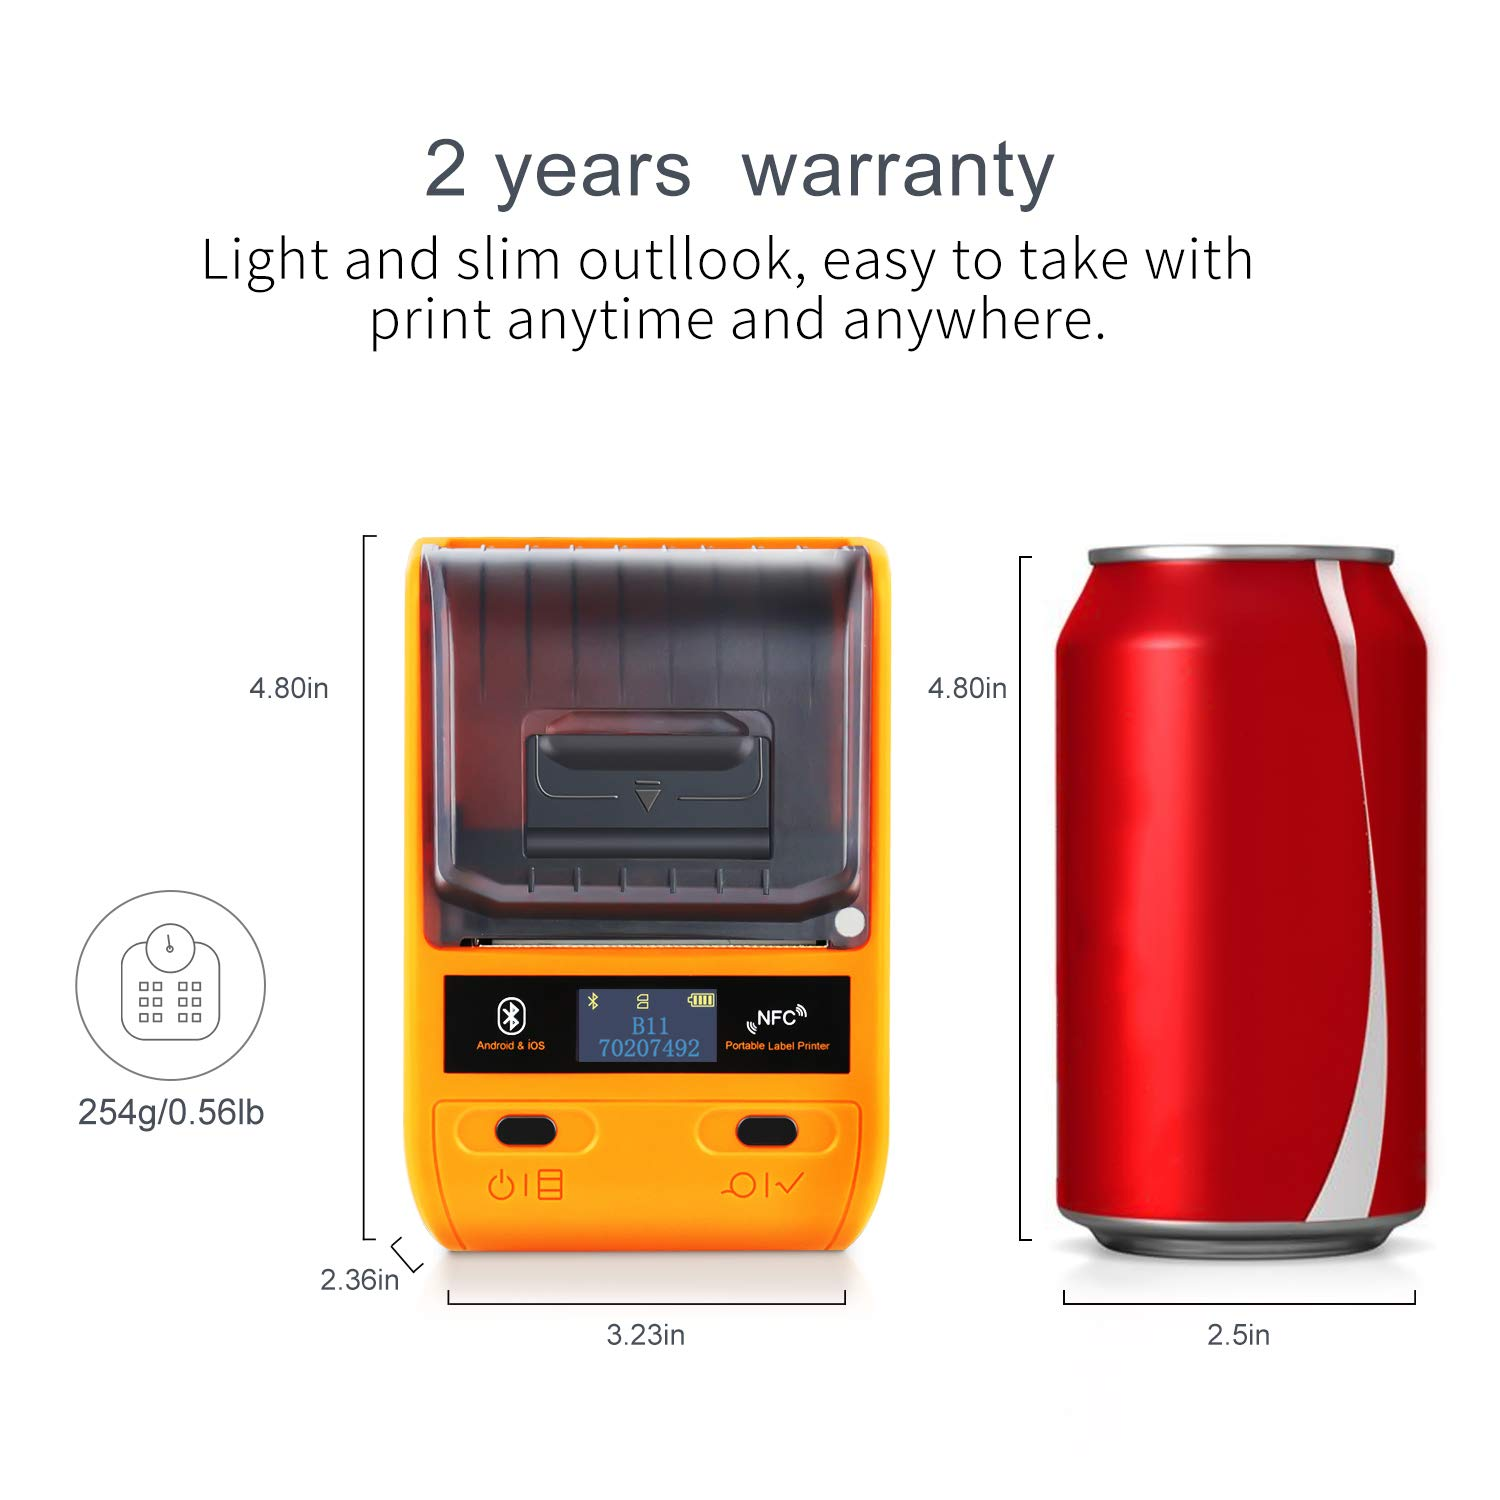 JINGCHEN B11 Bluetooth Portable Thermal Label Printer, Orange, Android & iOS, Wireless, Power & Communication, Computer-Room, Figures/Text/Images/barcodes, 1 roll for free (0.98x 1.50x1.57 in) 100 pcs by JINGCHEN (Image #4)